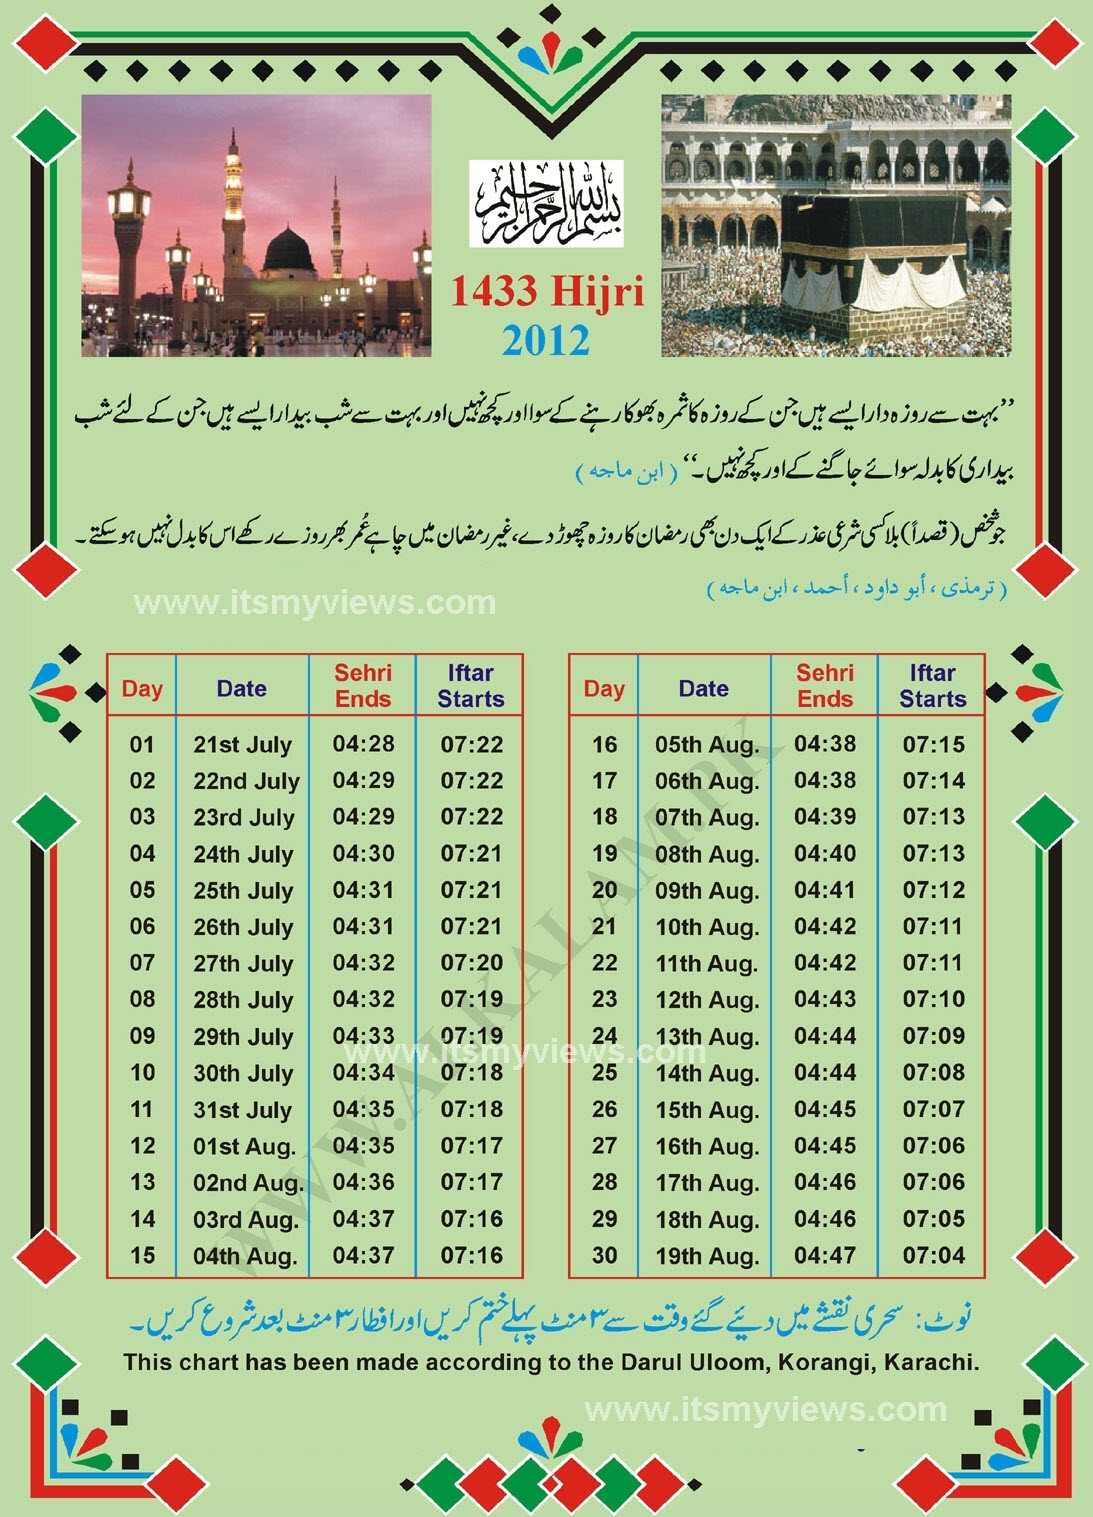 Ramadan Islamic Calendar 2012 Fast Timing For Sher Iftaar with regard to Islamic Calendar 2008 In Pakistan